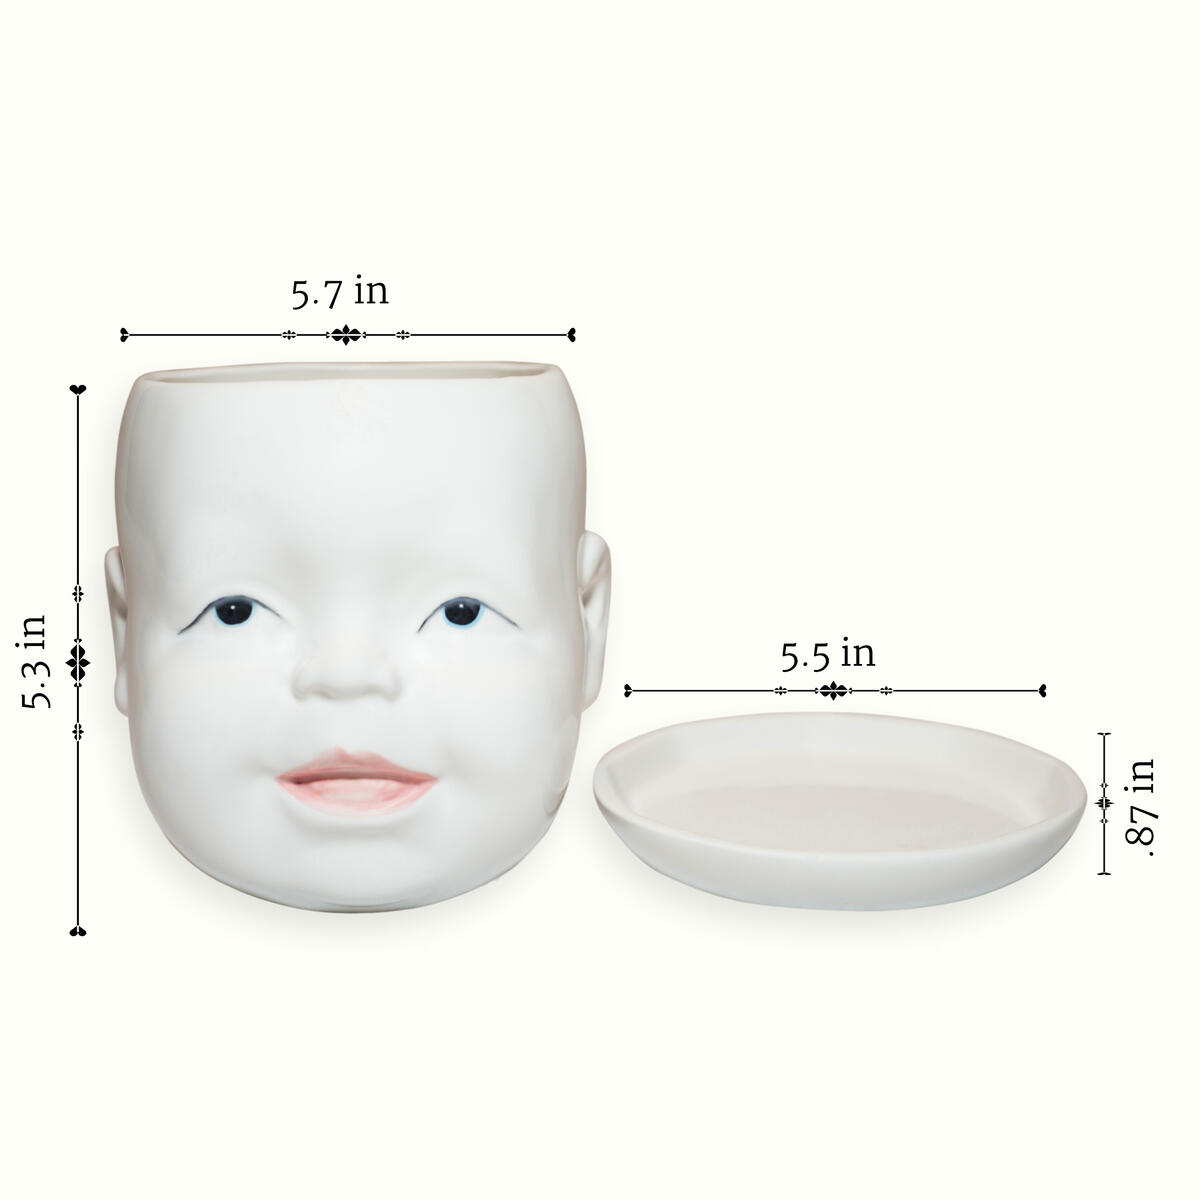 Ceramic Baby Head Planter with Stand - 5.7